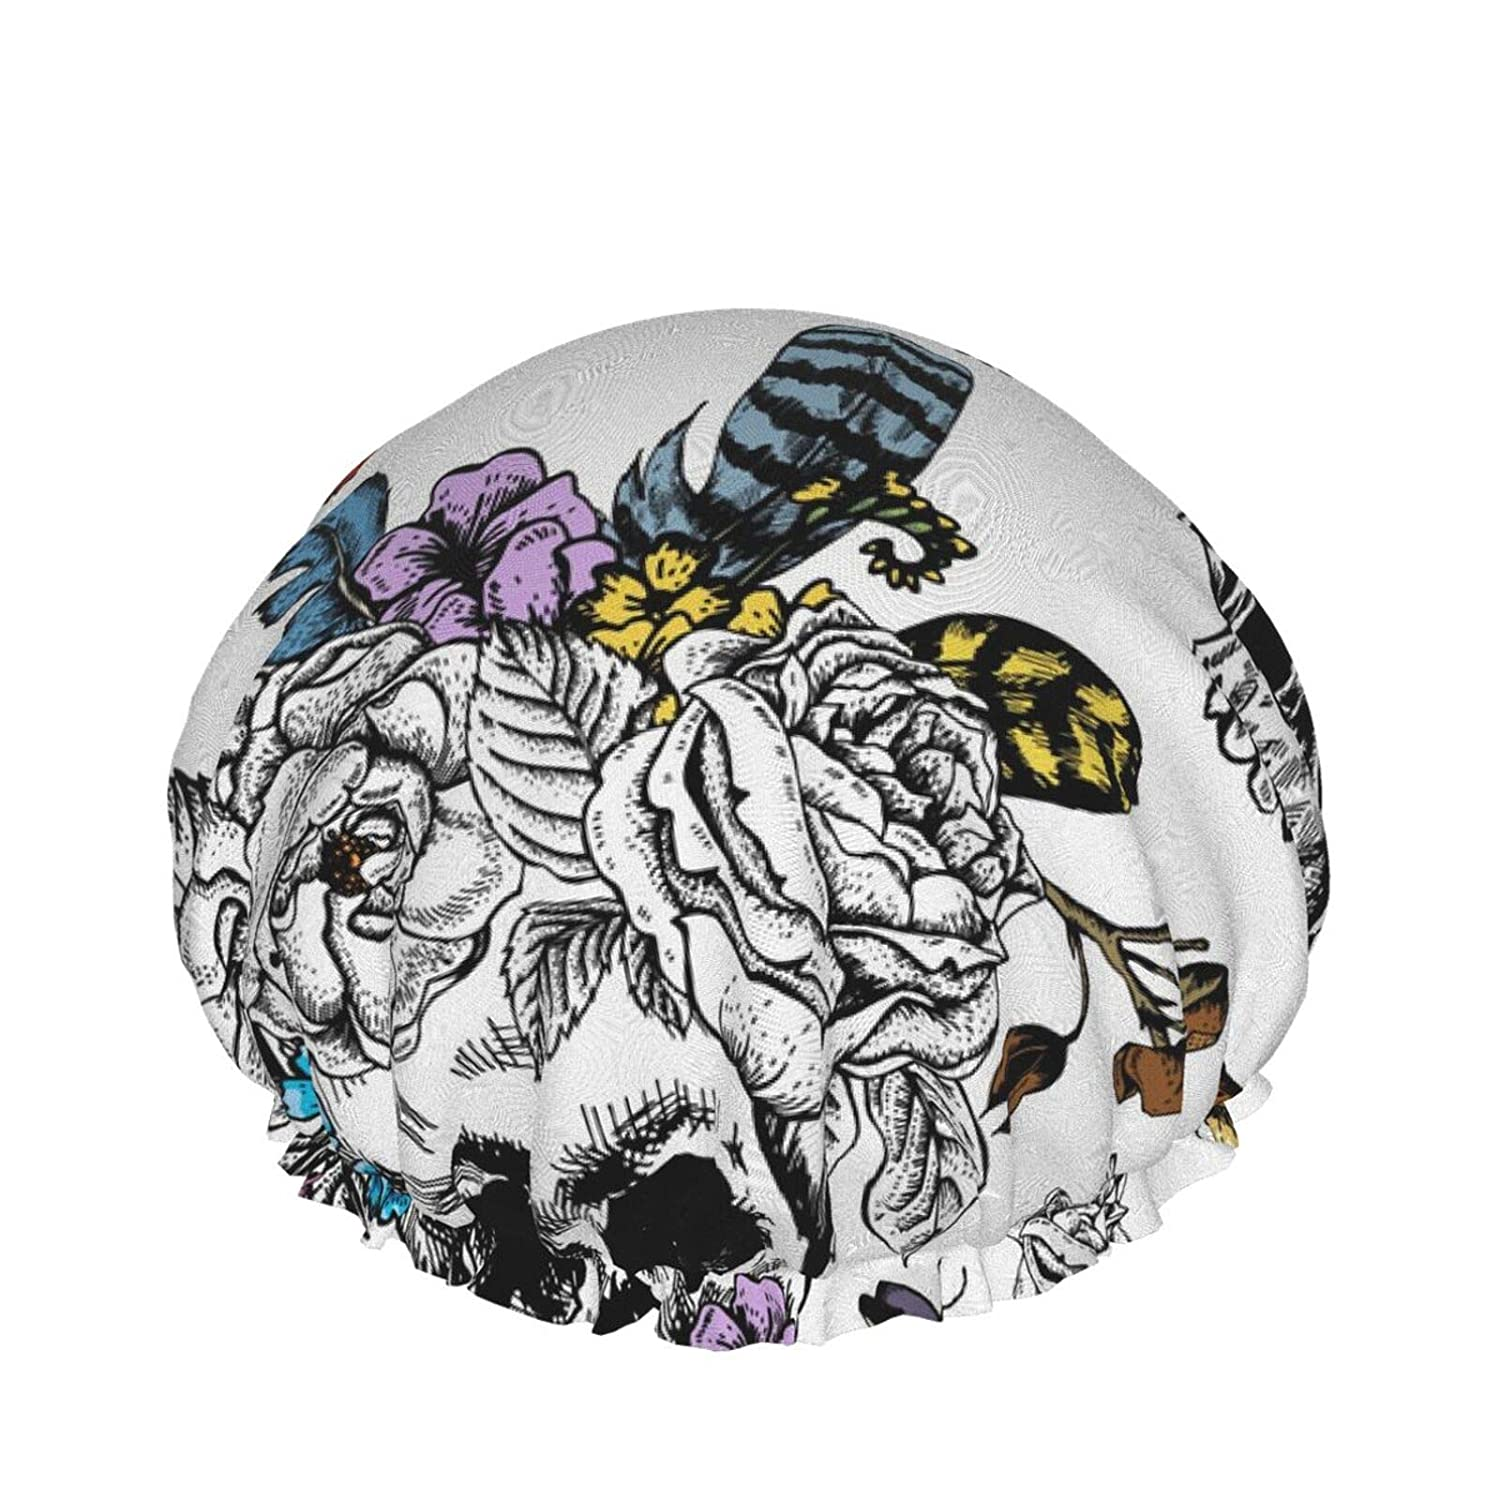 Skull And Flowers Day Of The Dead Black Tattoo Shower Cap for Women, Double Waterproof Bath Cap Hair Bonnet, 3D Printed Shower Hat Hair Protection Shower Caps for Spa Makeup Salon Home Use